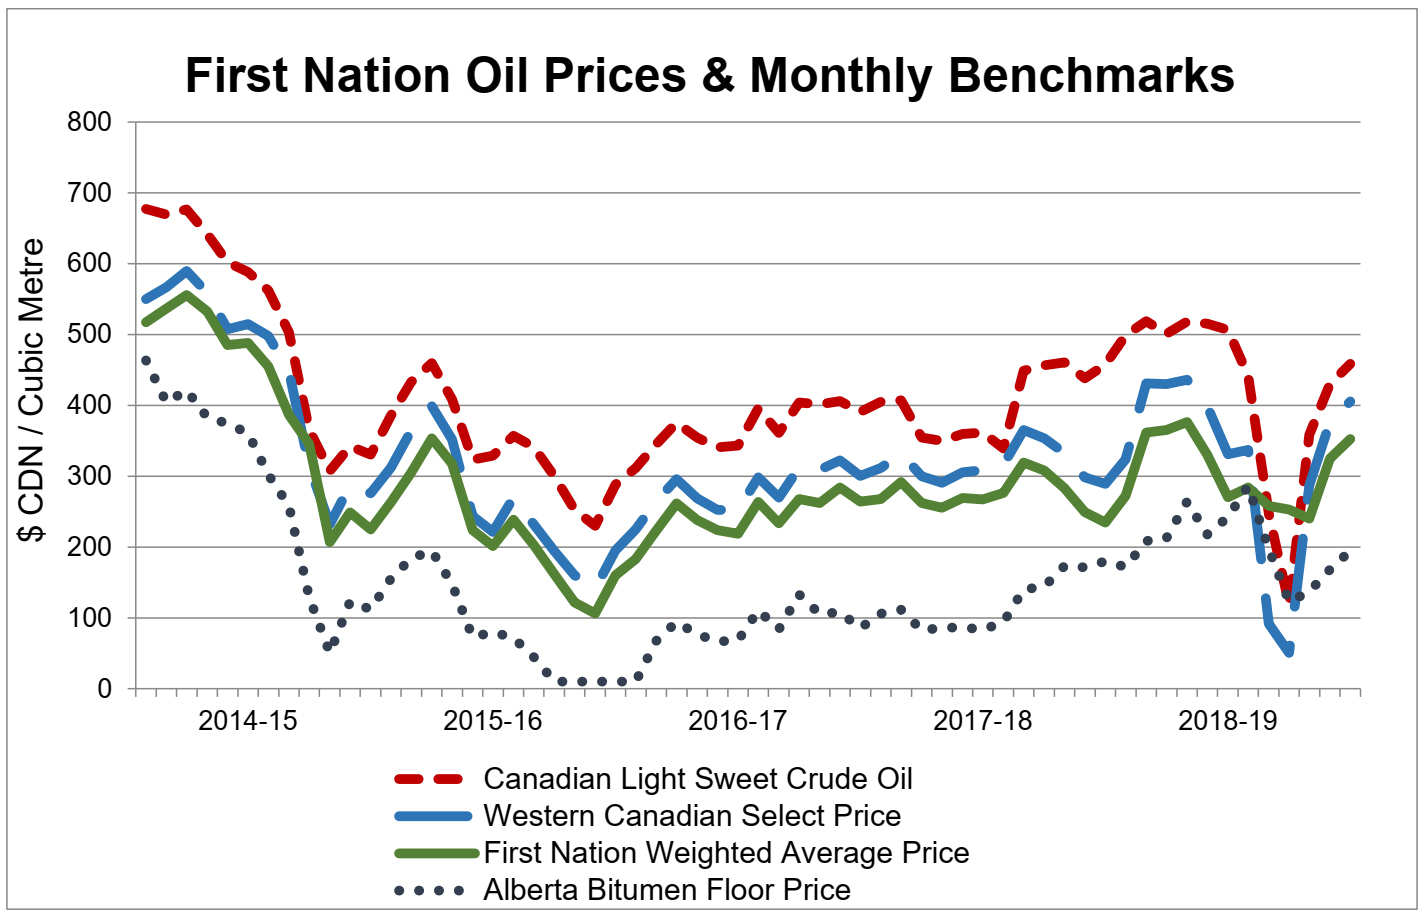 First Nation Oil Prices & Monthly Benchmarks